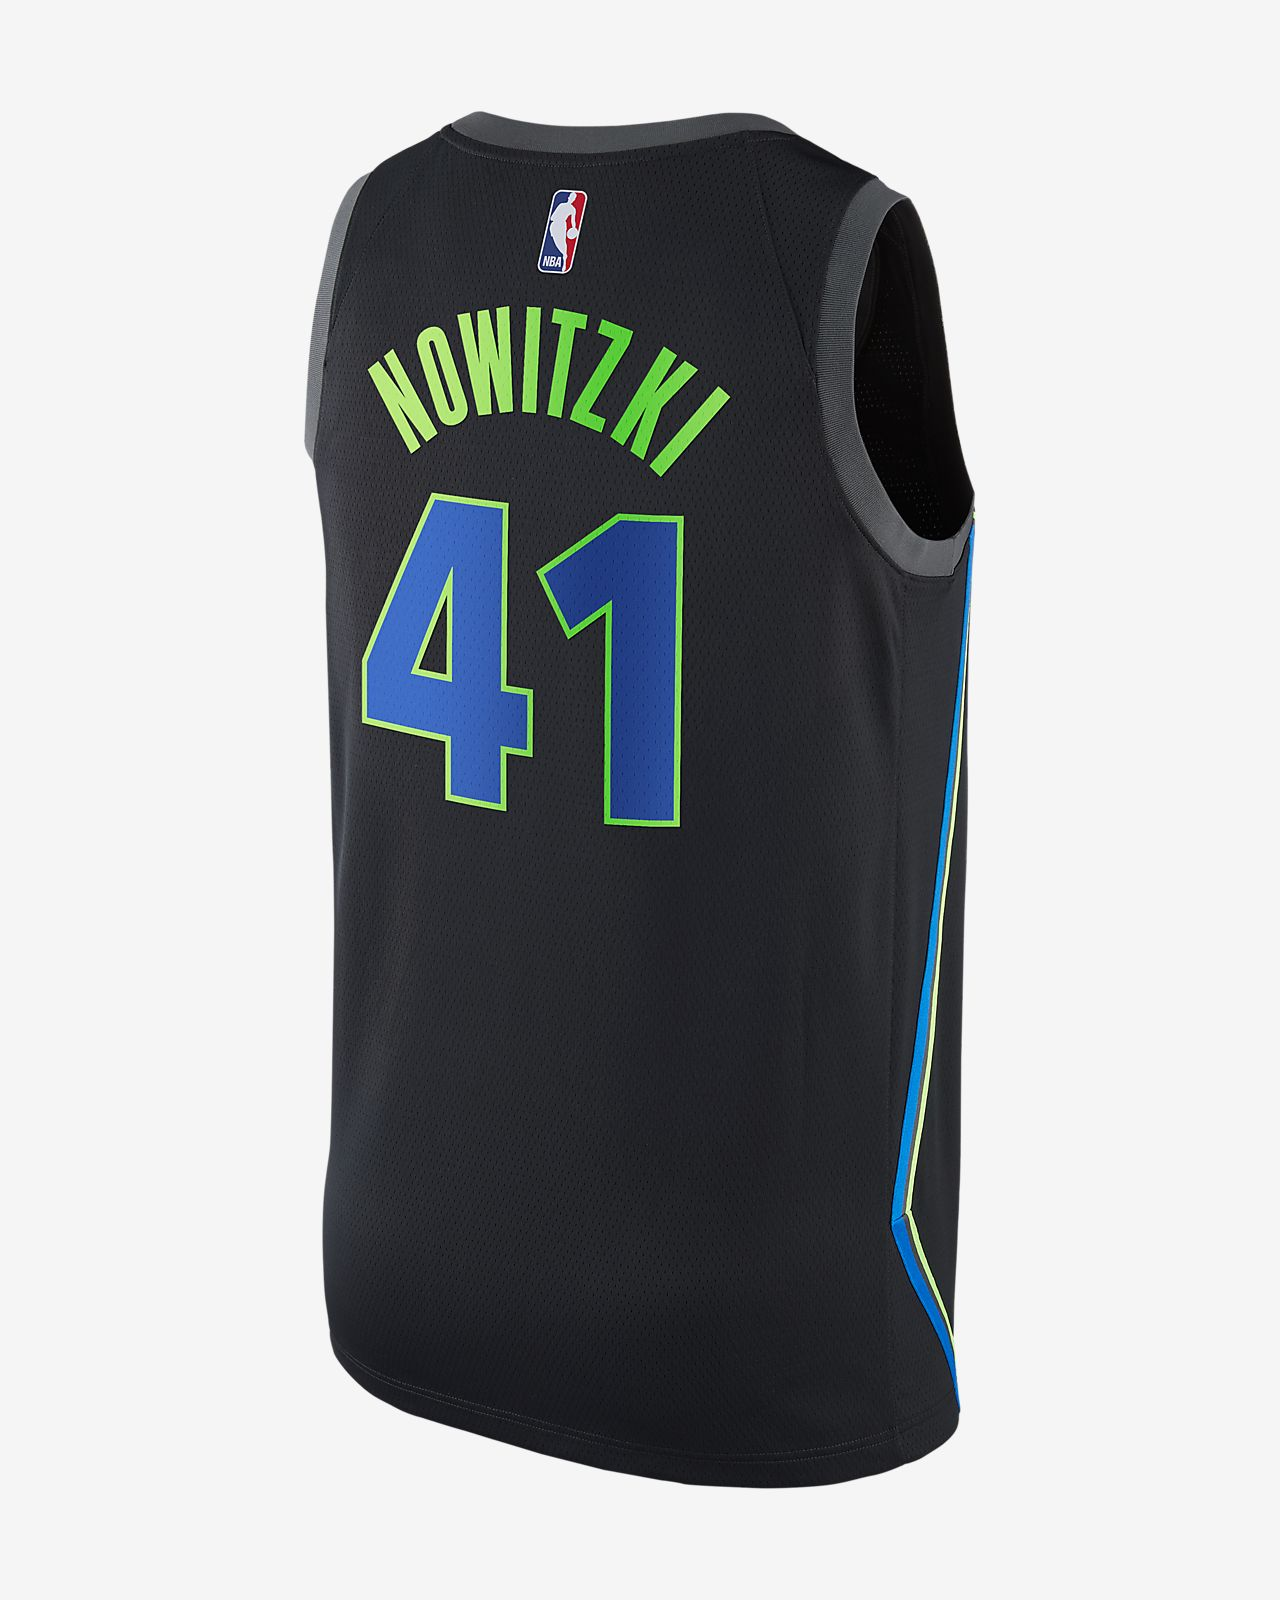 ... Dirk Nowitzki City Edition Swingman Jersey (Dallas Mavericks) Men s  Nike NBA Connected Jersey cf9fa5677